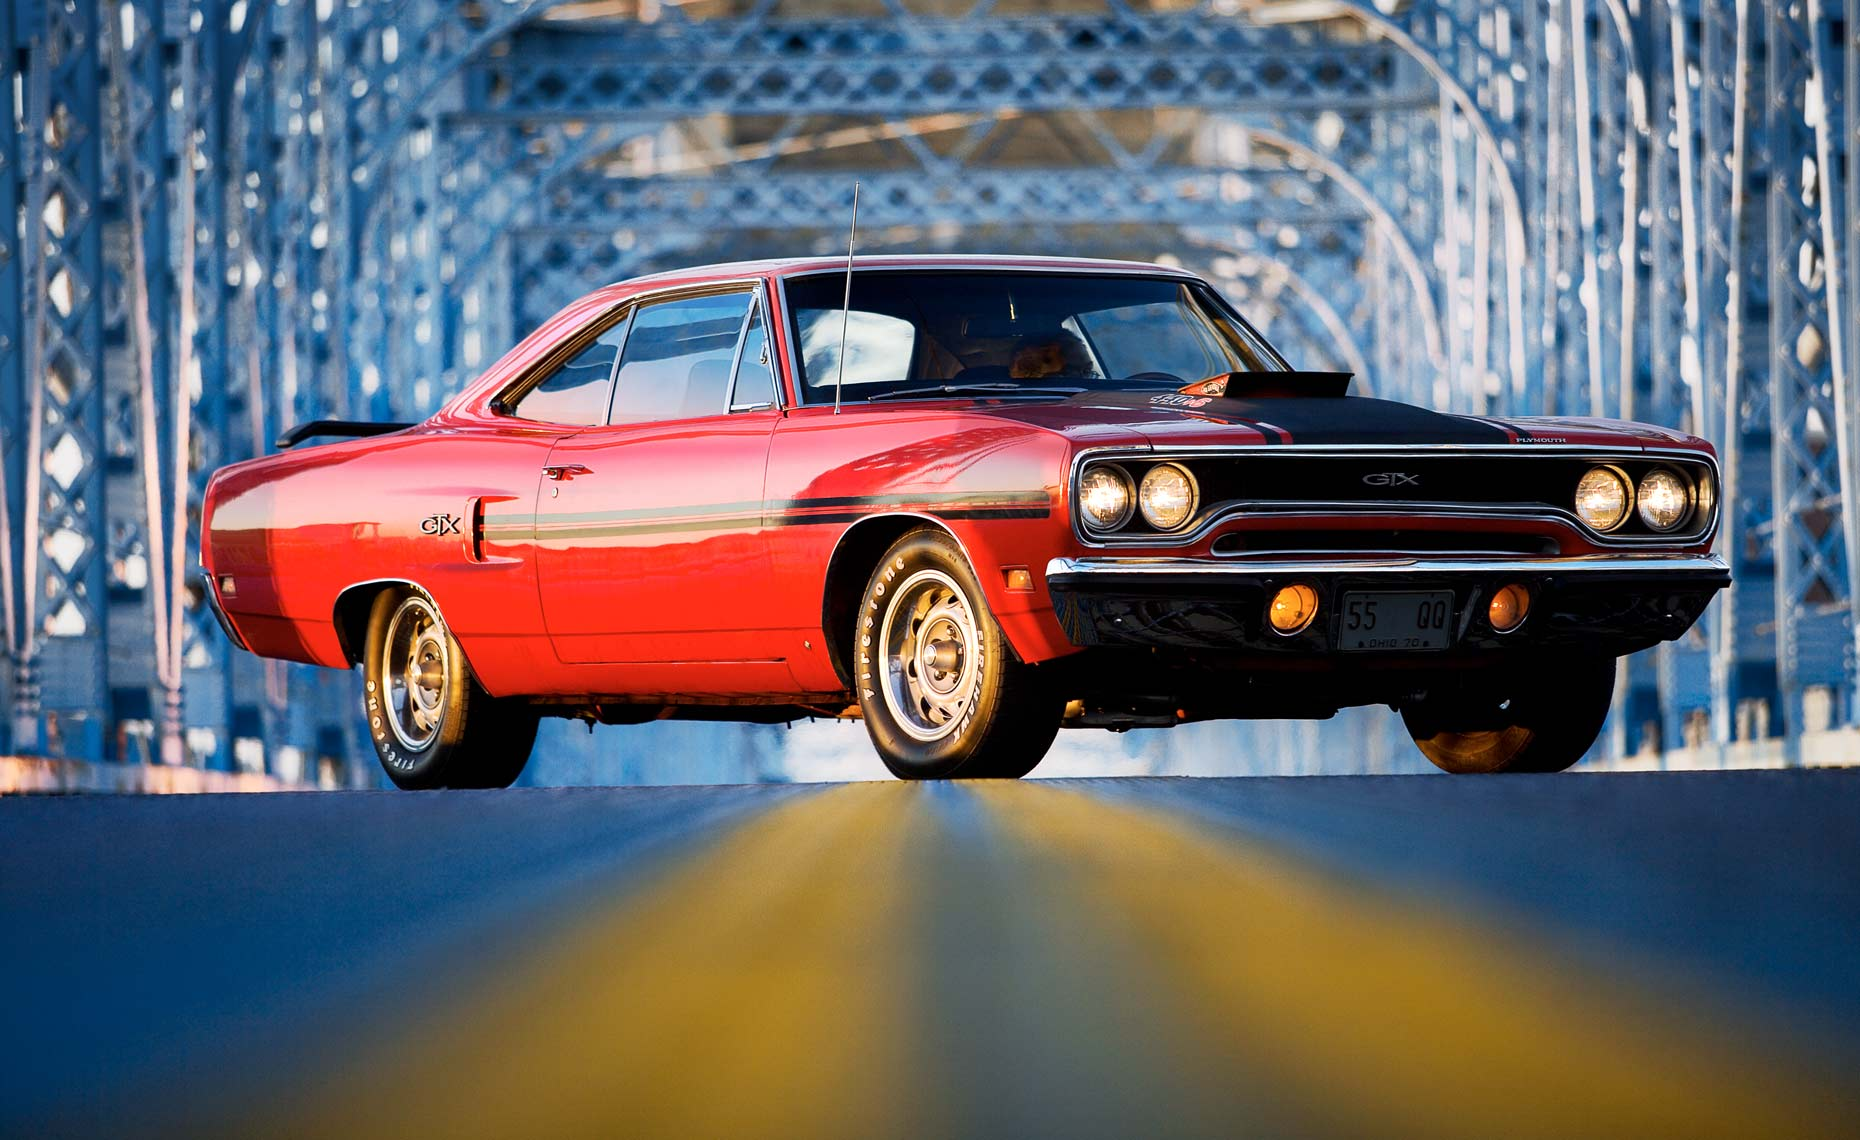 GTX-on-bridge